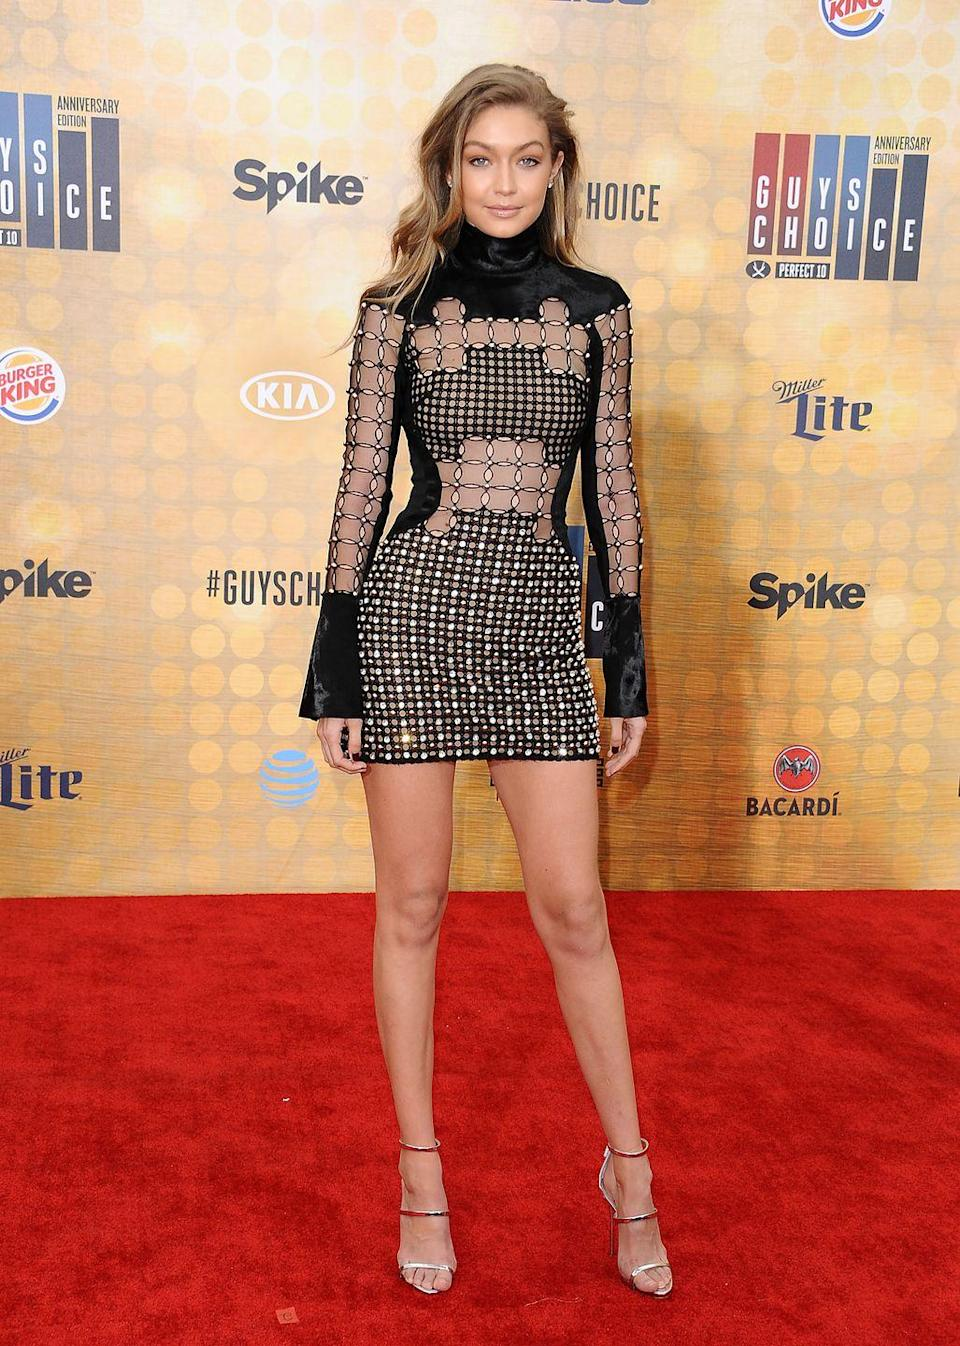 """<p>Even wearing a dress full of holes, Hadid looks chic while attending the <a href=""""https://www.harpersbazaar.com/celebrity/latest/g7368/guys-choice-awards-red-carpet-best-looks/"""" rel=""""nofollow noopener"""" target=""""_blank"""" data-ylk=""""slk:Spike TV Guys Choice Awards"""" class=""""link rapid-noclick-resp"""">Spike TV Guys Choice Awards</a>. </p>"""